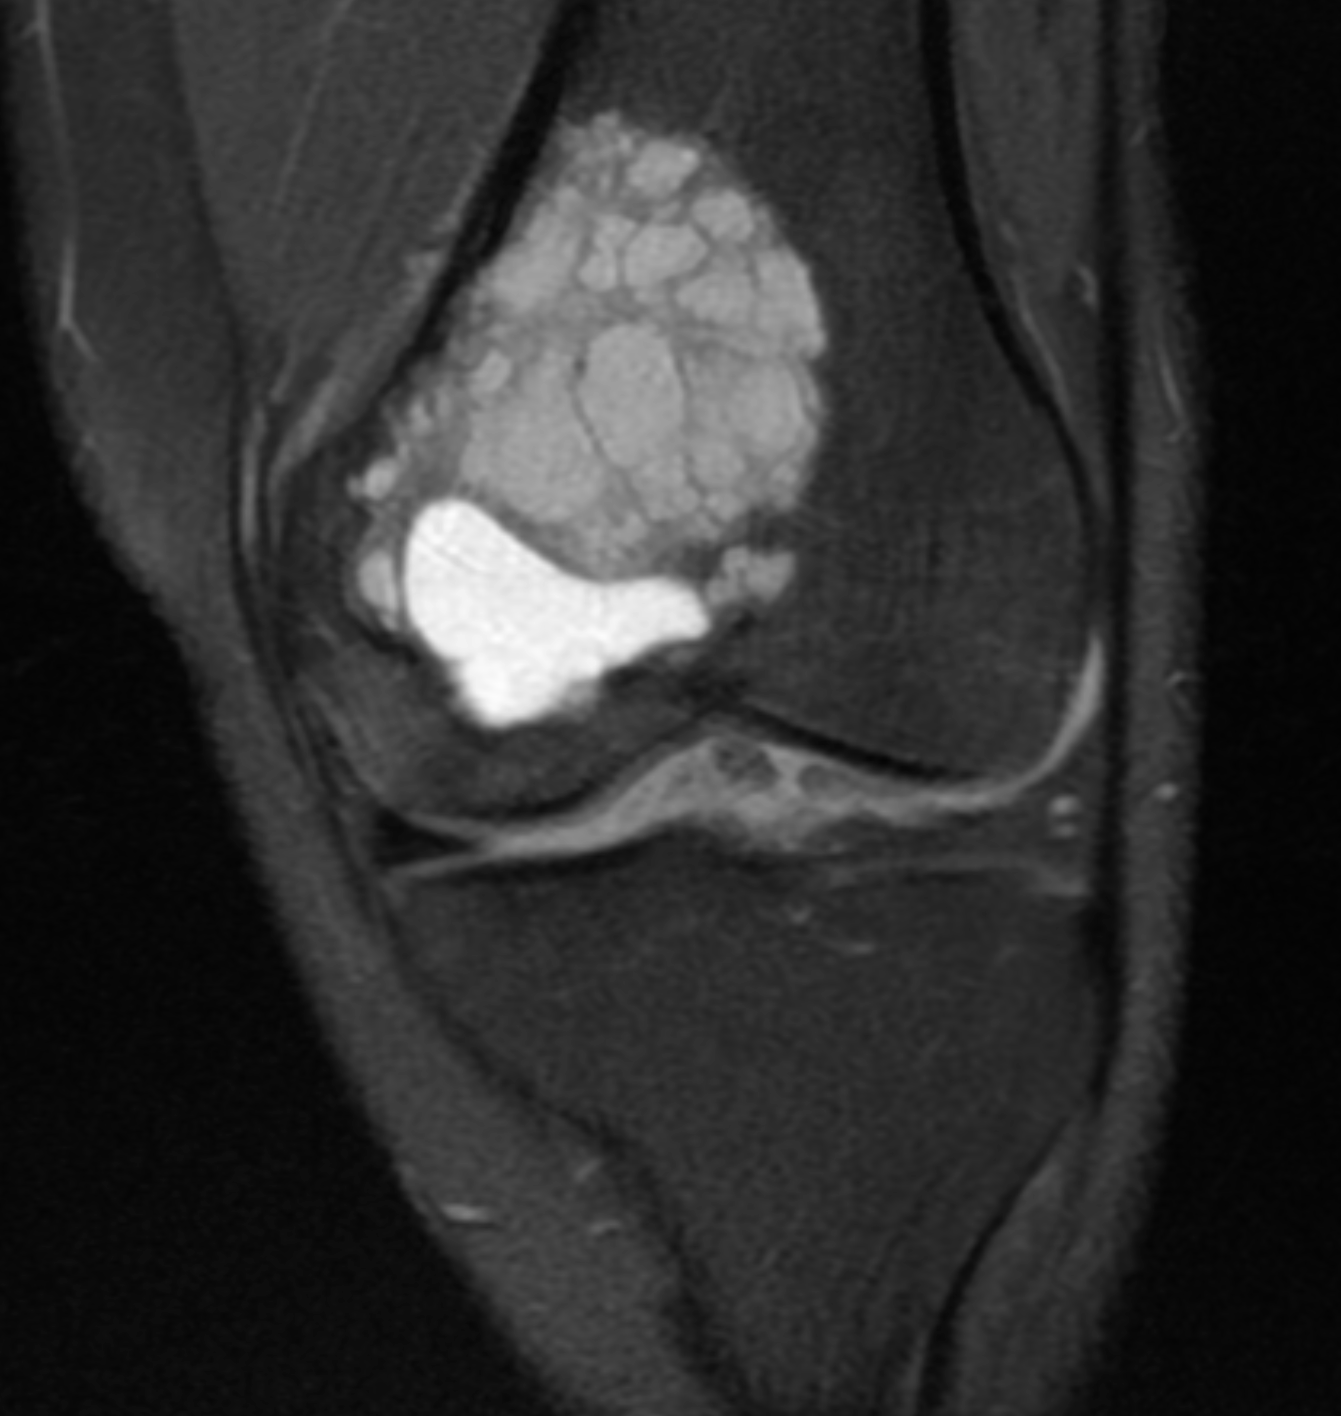 Coronal T2/STIR image of the left knee.